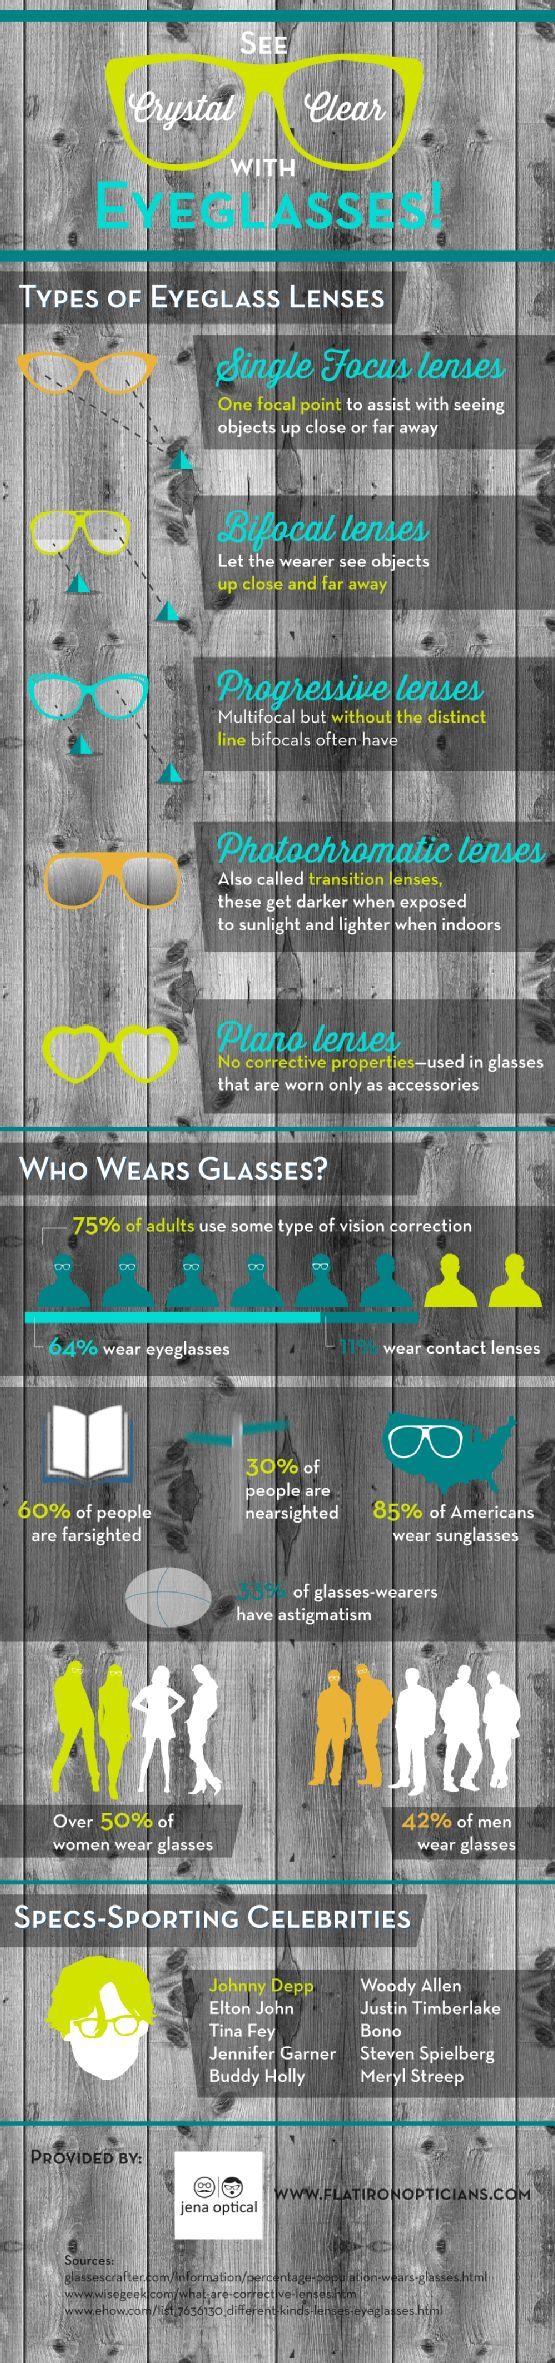 Did you know that 75% of adults use some type of vision correction? Find out which eyeglass lenses solve which vision problems by taking a look at thi